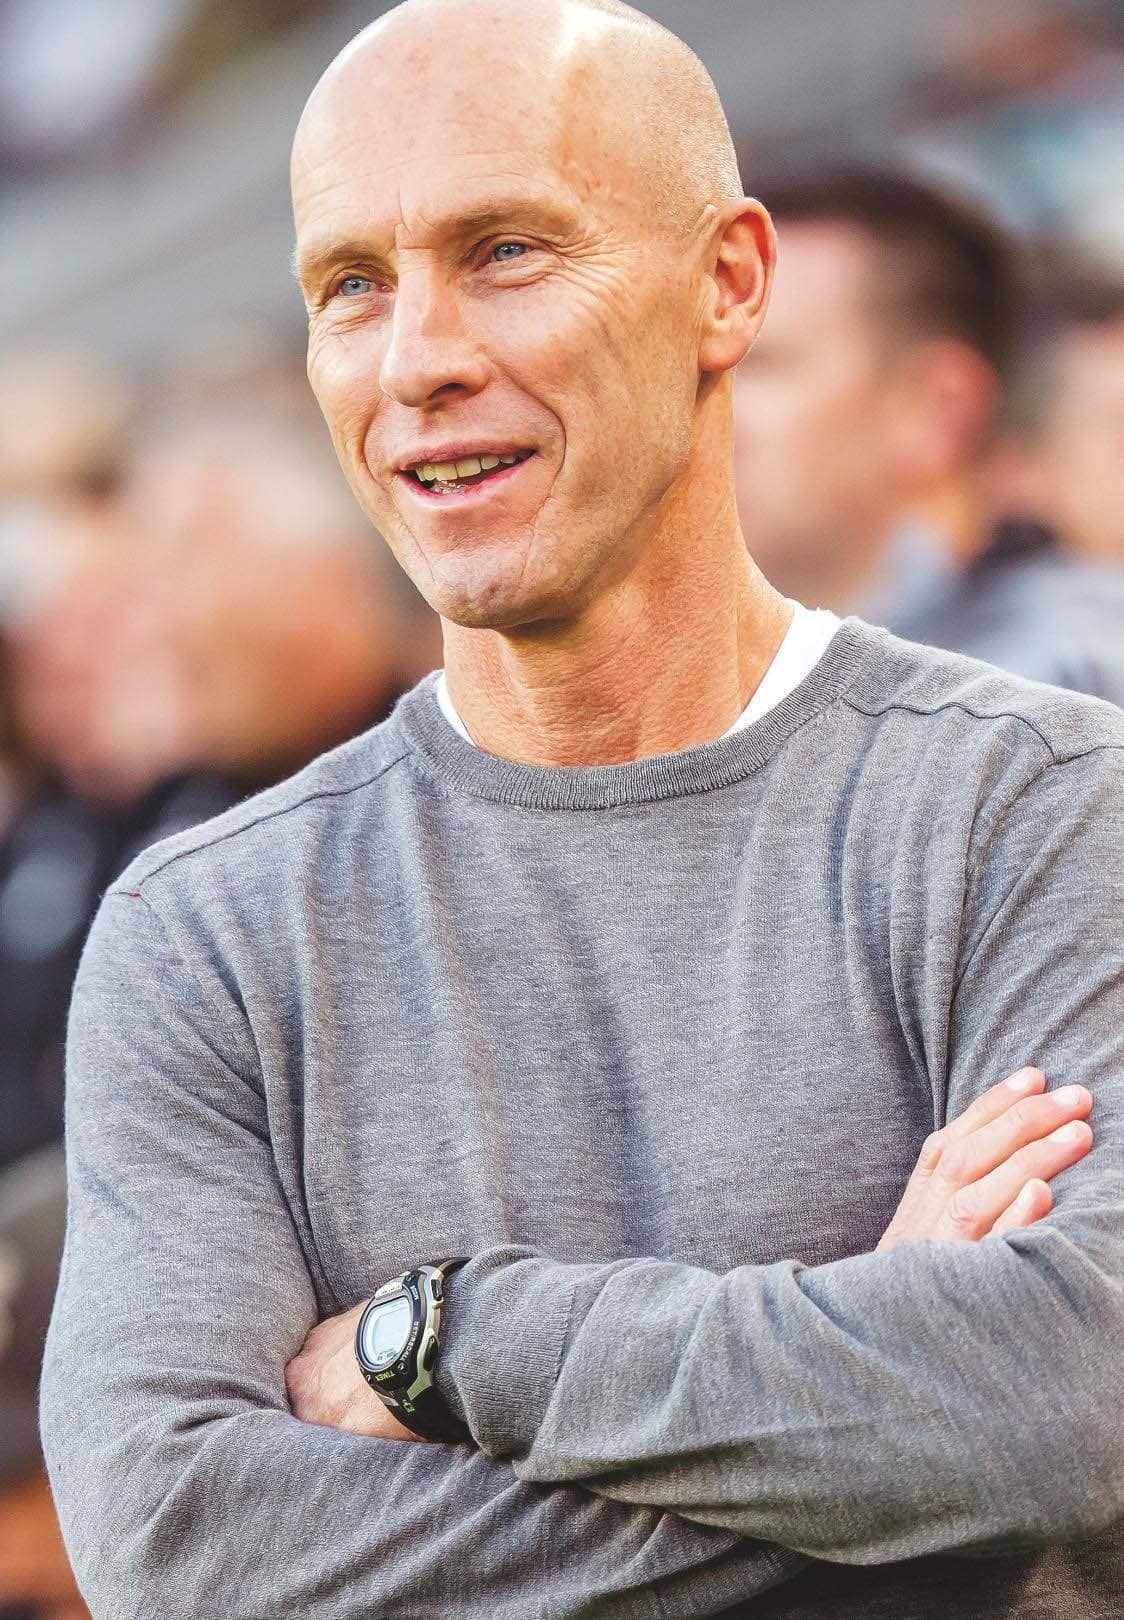 Bob Bradley: 'I'm Not Afraid Of Any Challenge. I've Gone Places That Other People Wouldn't Have Gone Near'